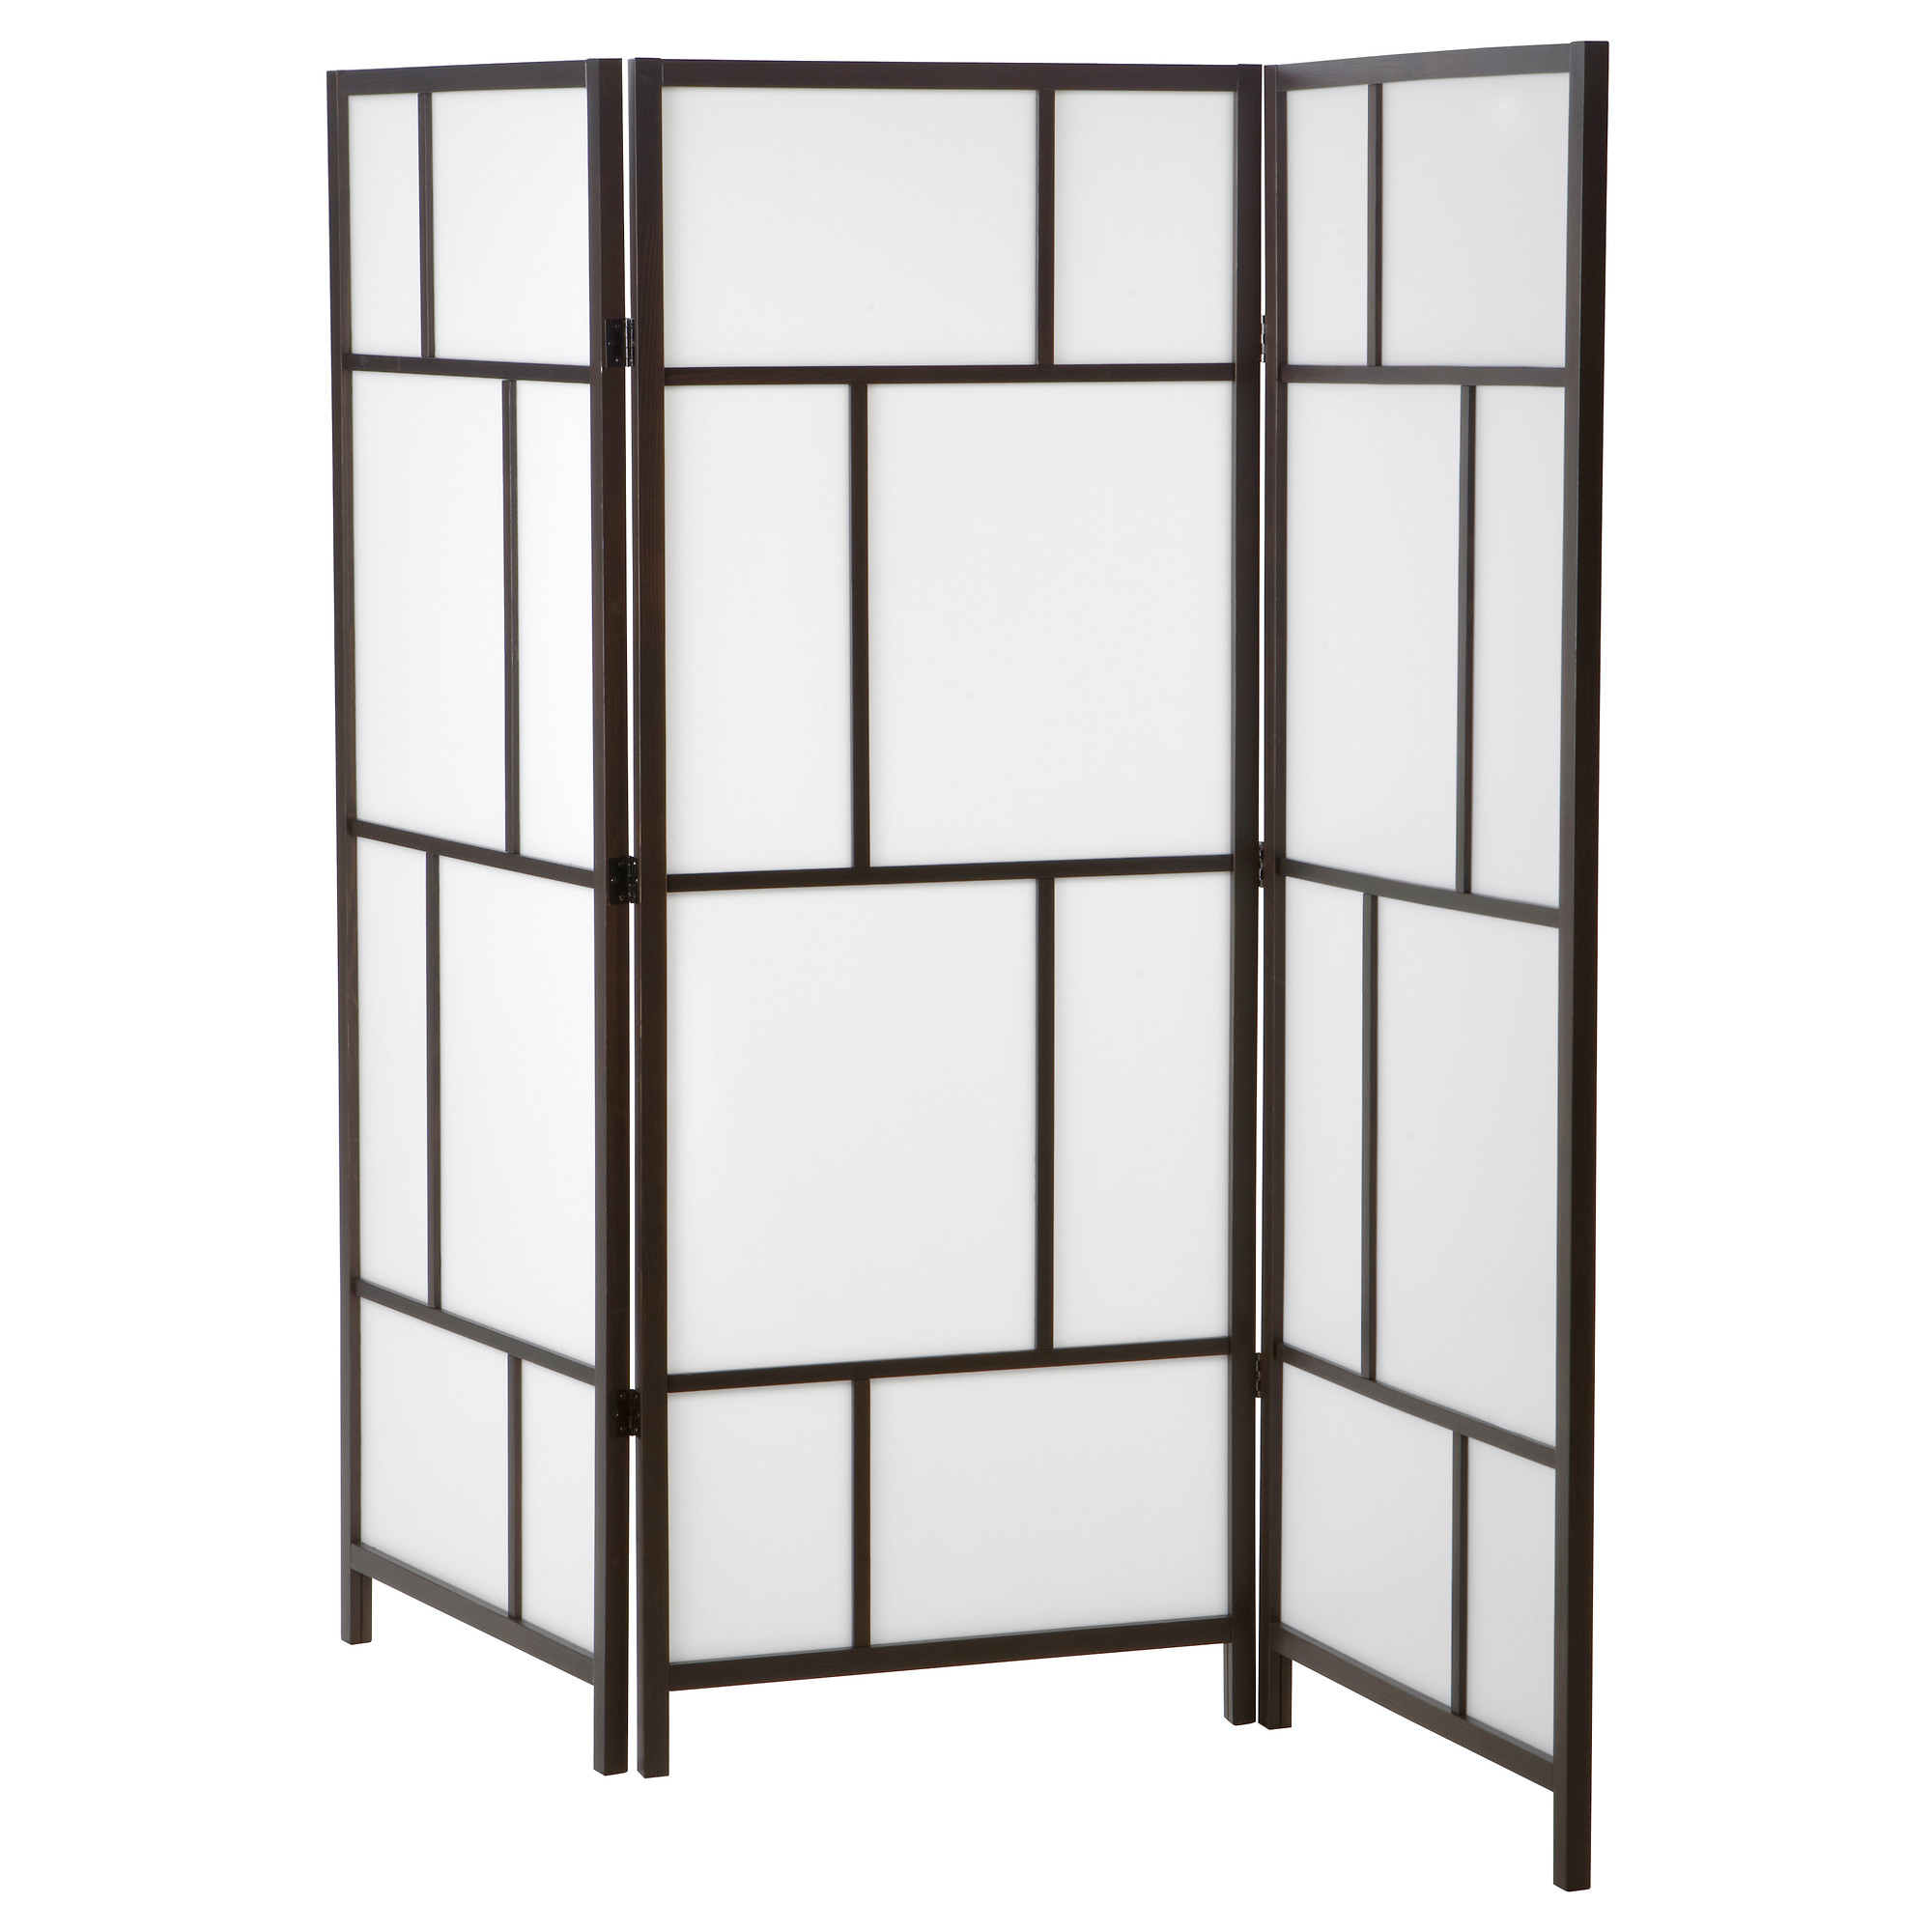 Room Separators Ikea | Home Depot Wall Dividers | Sliding Room Dividers